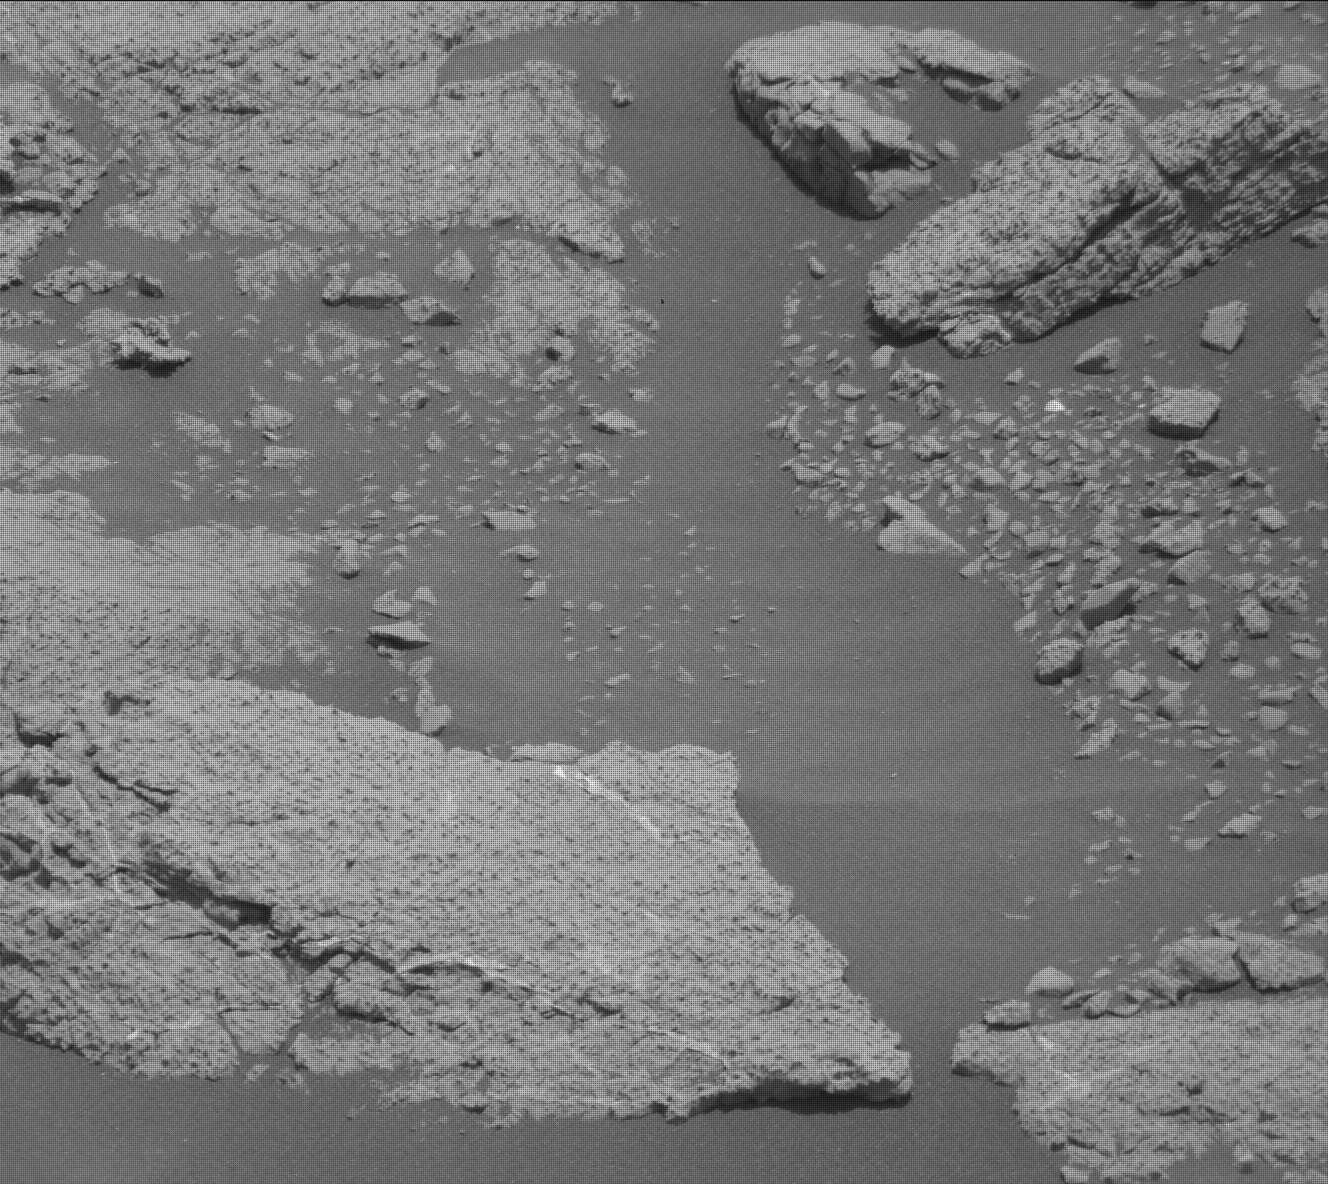 Nasa's Mars rover Curiosity acquired this image using its Mast Camera (Mastcam) on Sol 3030